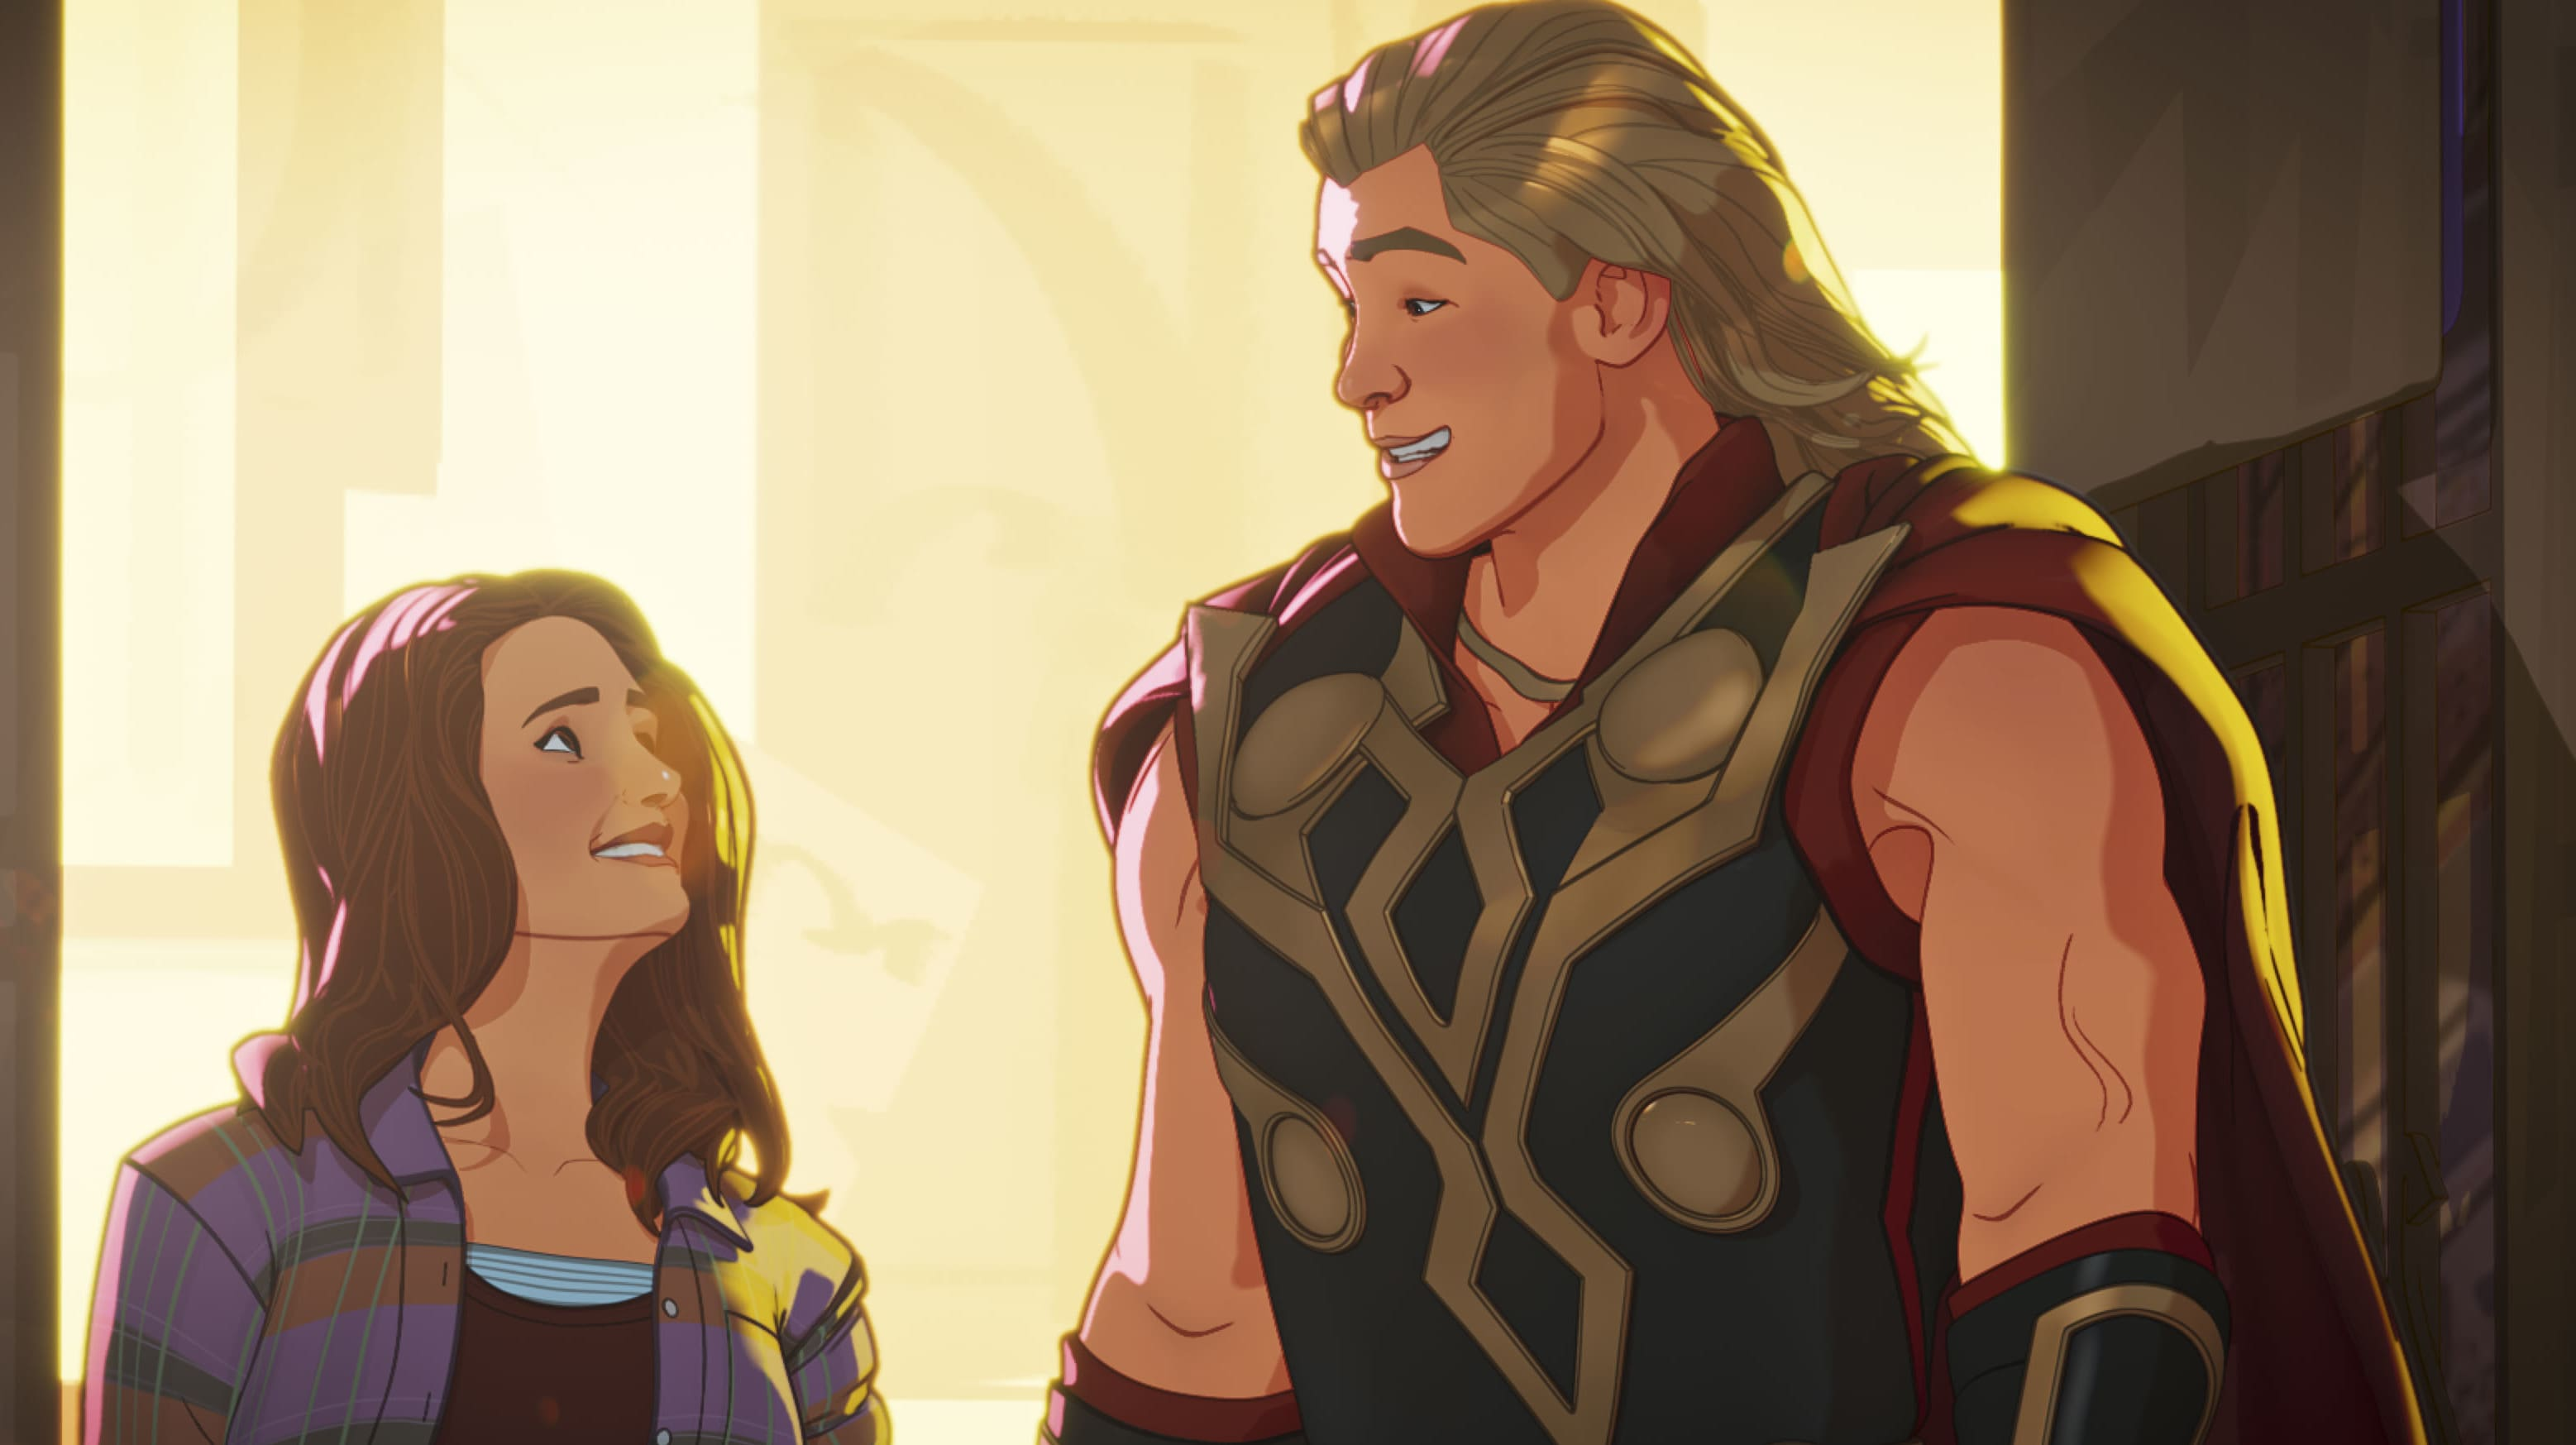 Jane Foster and Party Thor in Marvel Studios' WHAT IF…? exclusively on Disney+. ©Marvel Studios 2021. All Rights Reserved.